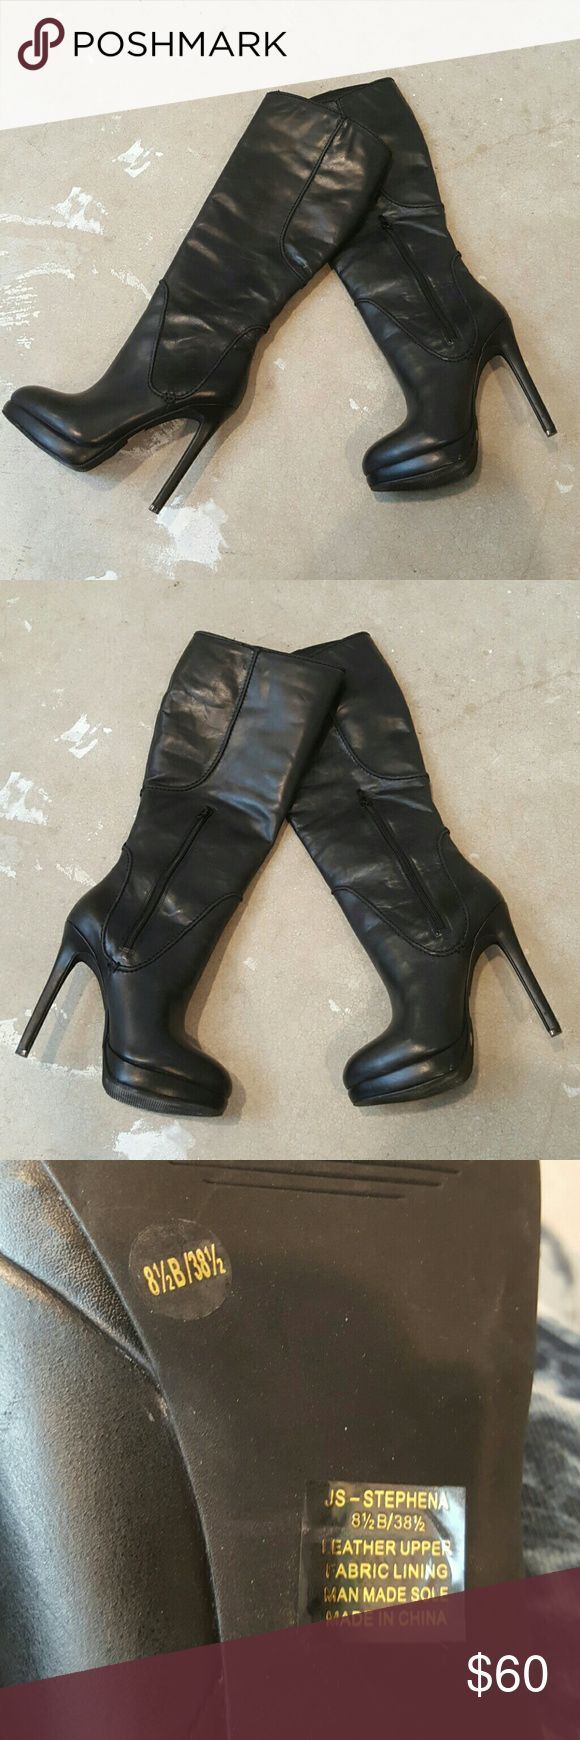 """Jessica Simpson Leather Mid-Calf Boots I am selling an exceptionally sexy and cool pair of mid -calf leather boots by Jessica Simpson. This particular pair features a 4"""" heel and a boot shaft from ankle to top of 12"""".  Excellent condition only worn once. Jessica Simpson Shoes Heeled Boots"""